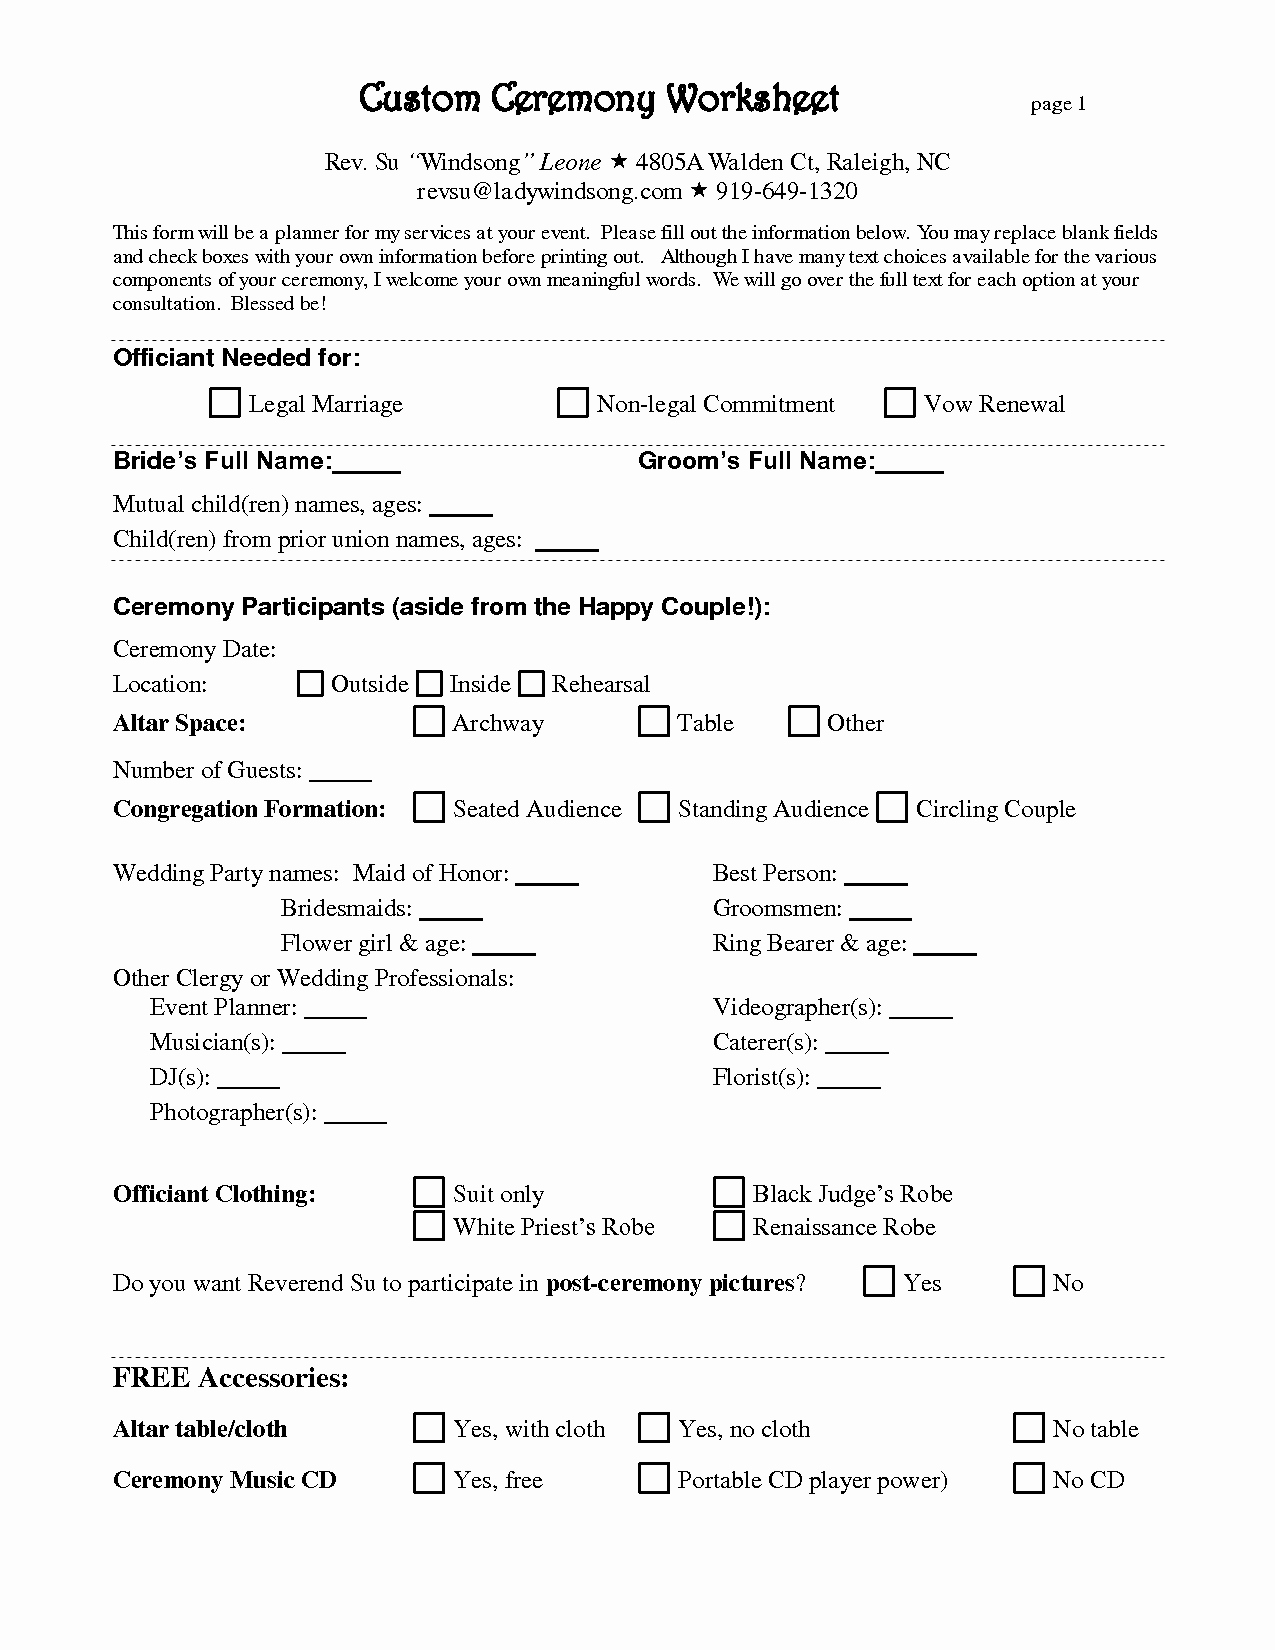 Wedding Planning Contract Templates Elegant Free Wedding Planner Contract Template